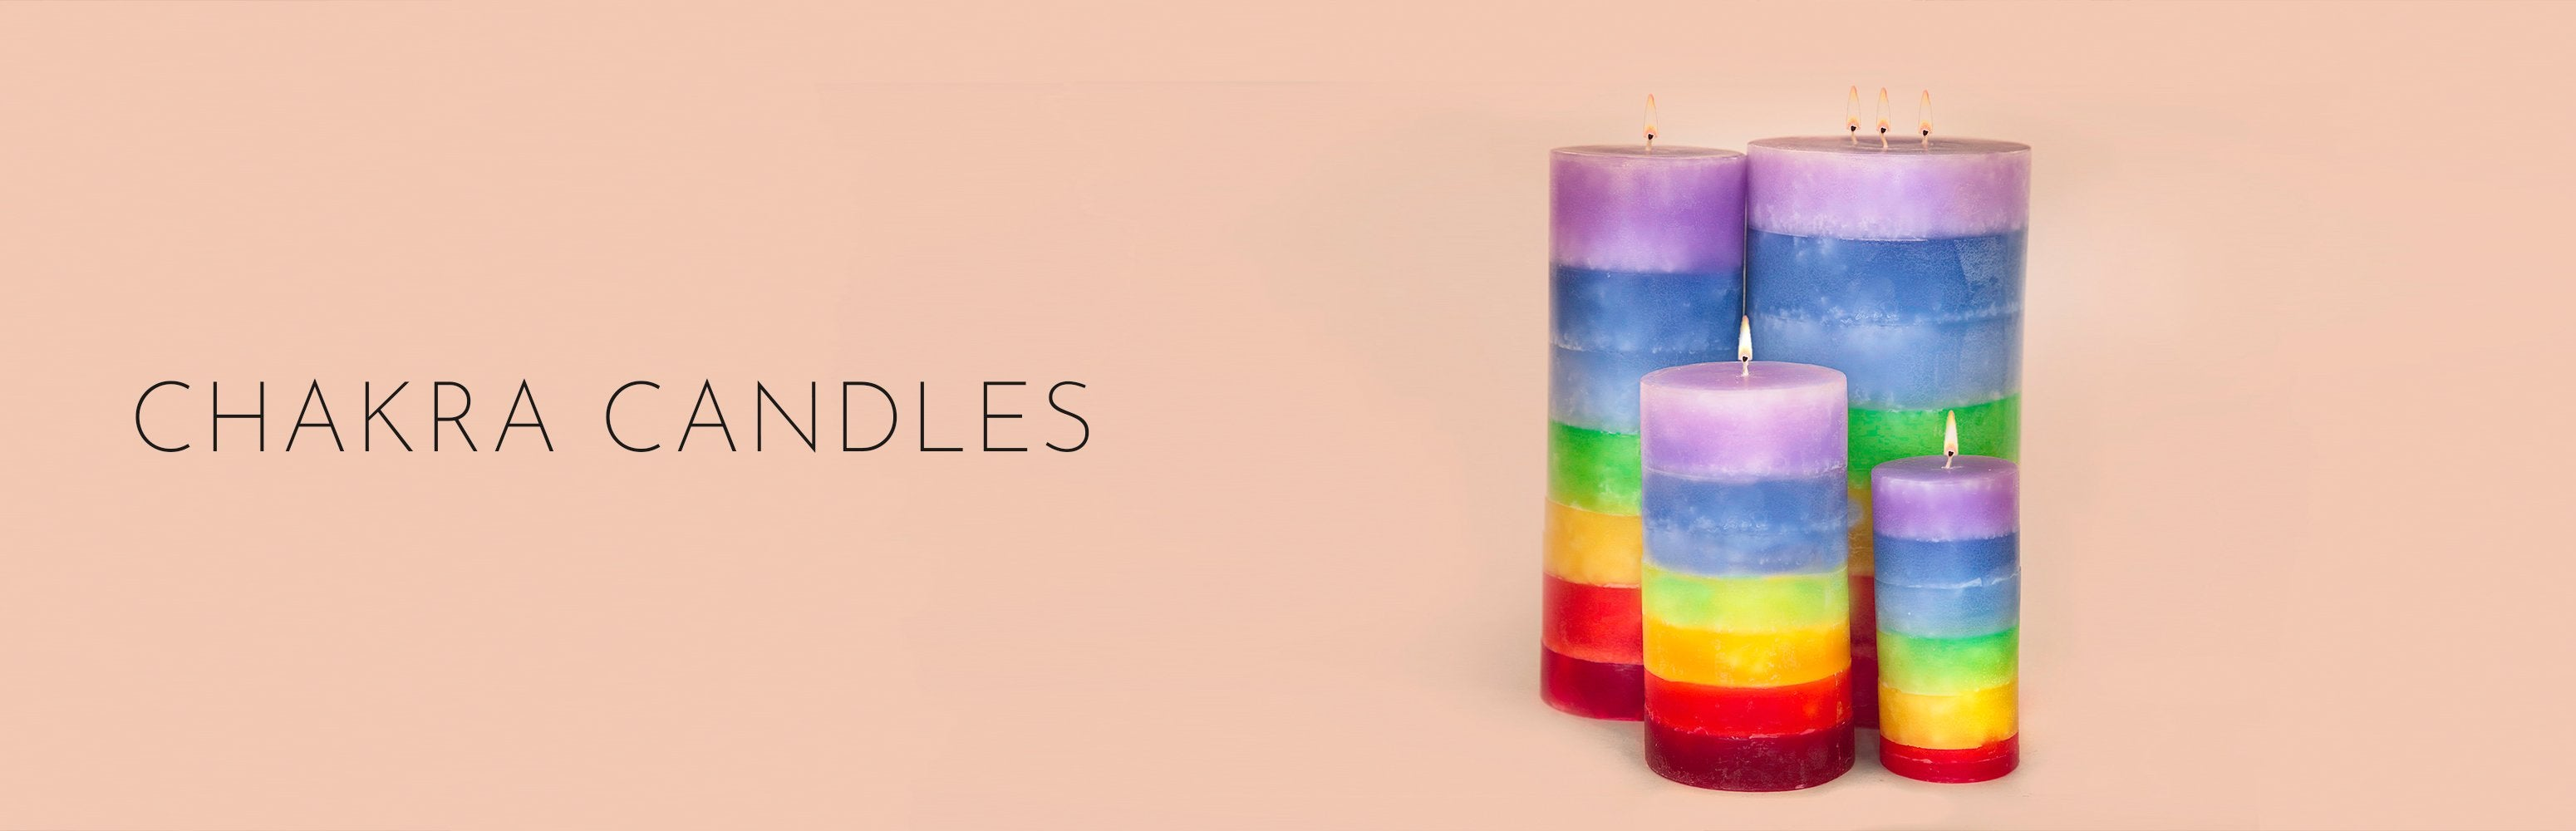 Stone Candles Chakras Collection